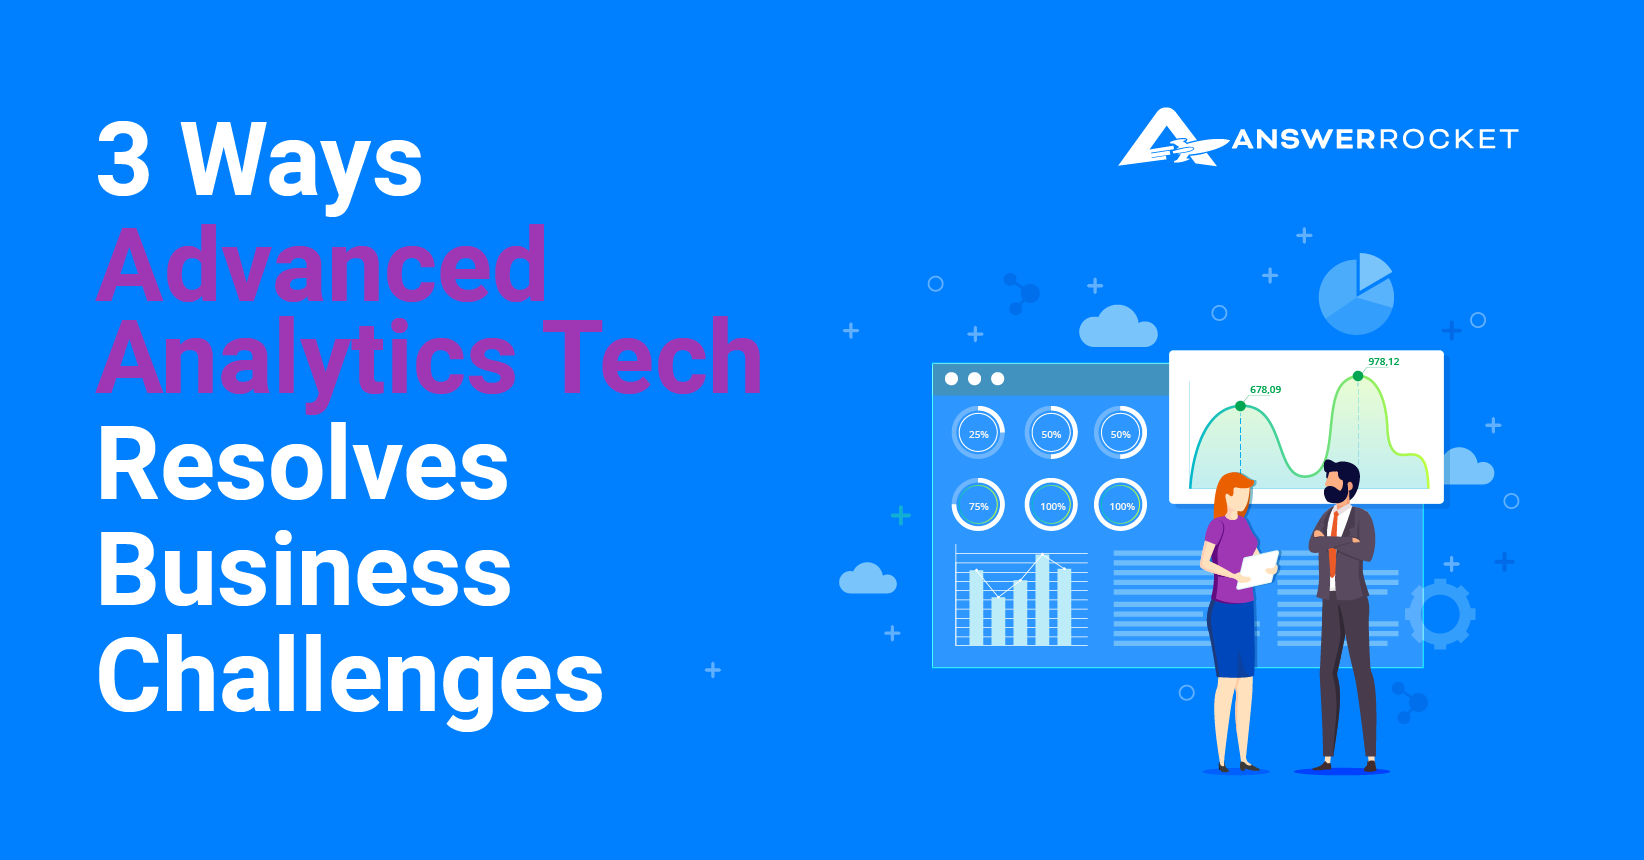 Learn the 3 ways advanced analytics techniques resolve business challenges.